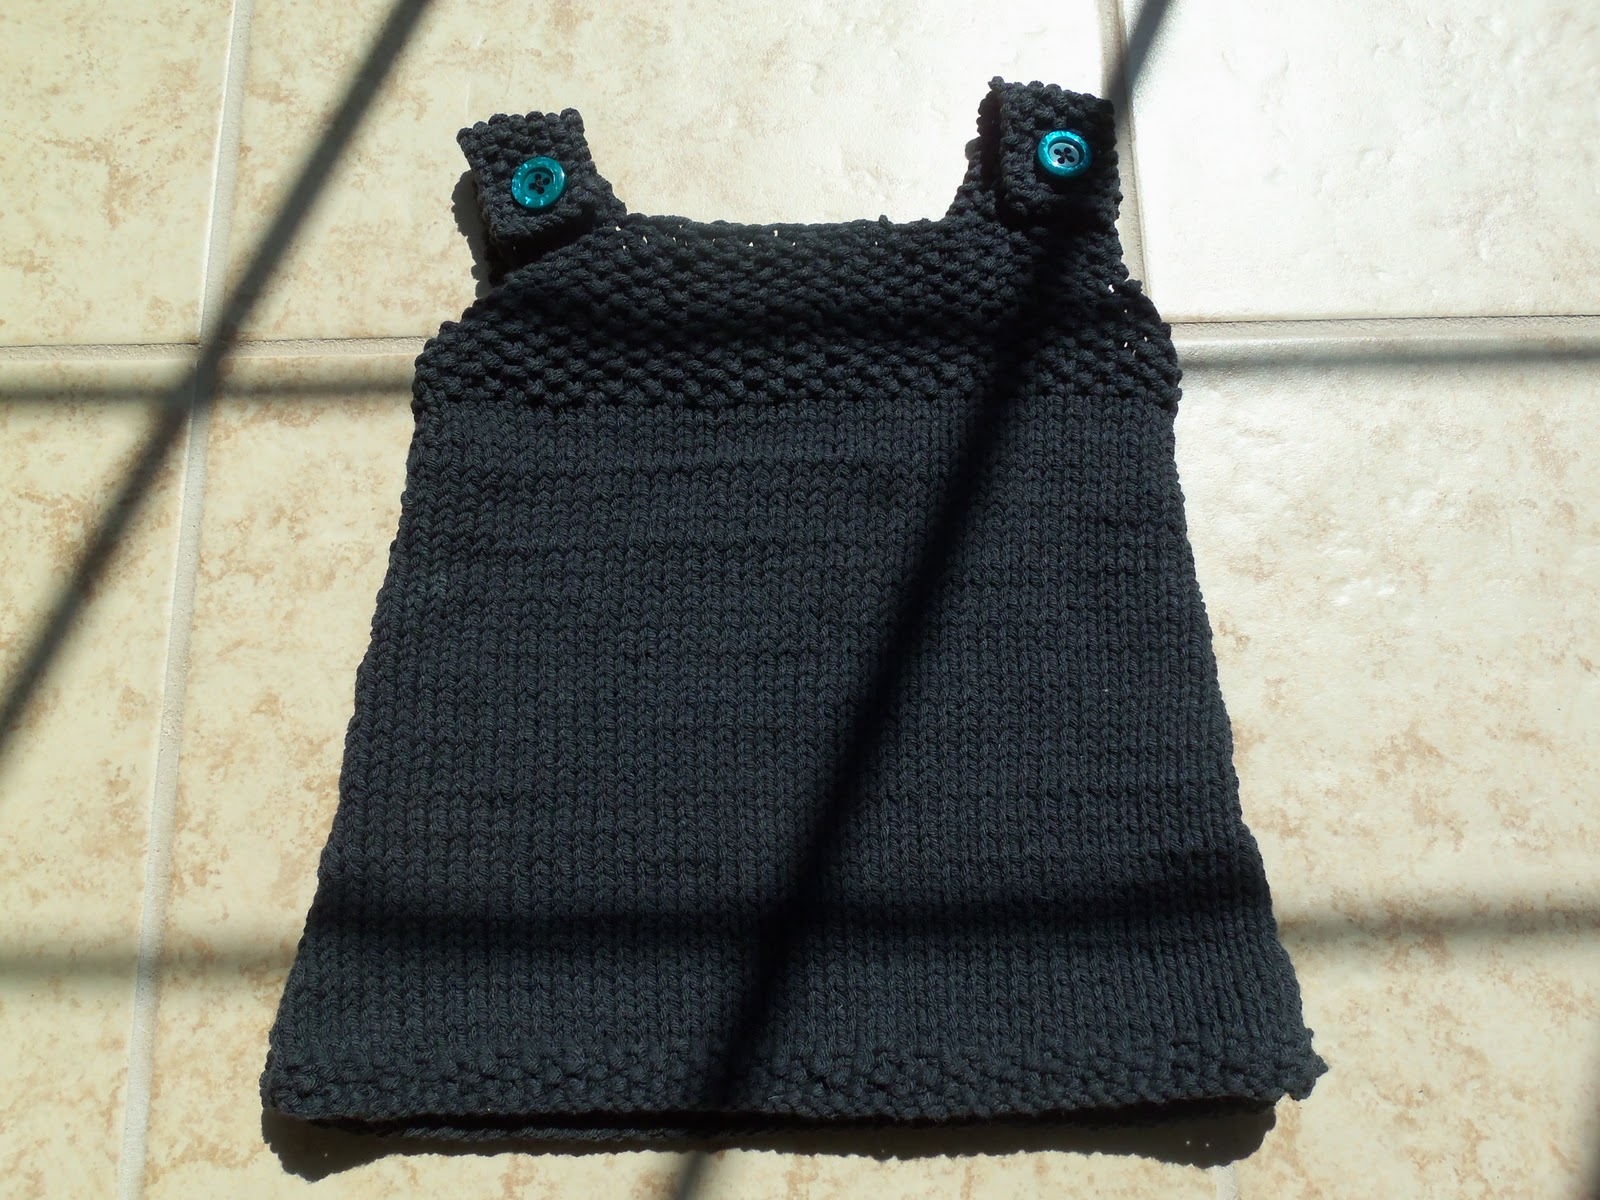 Knitting Patterns For Baby Tunics : Katydid and Kid: Wordless Wednesday: Baby Knitting